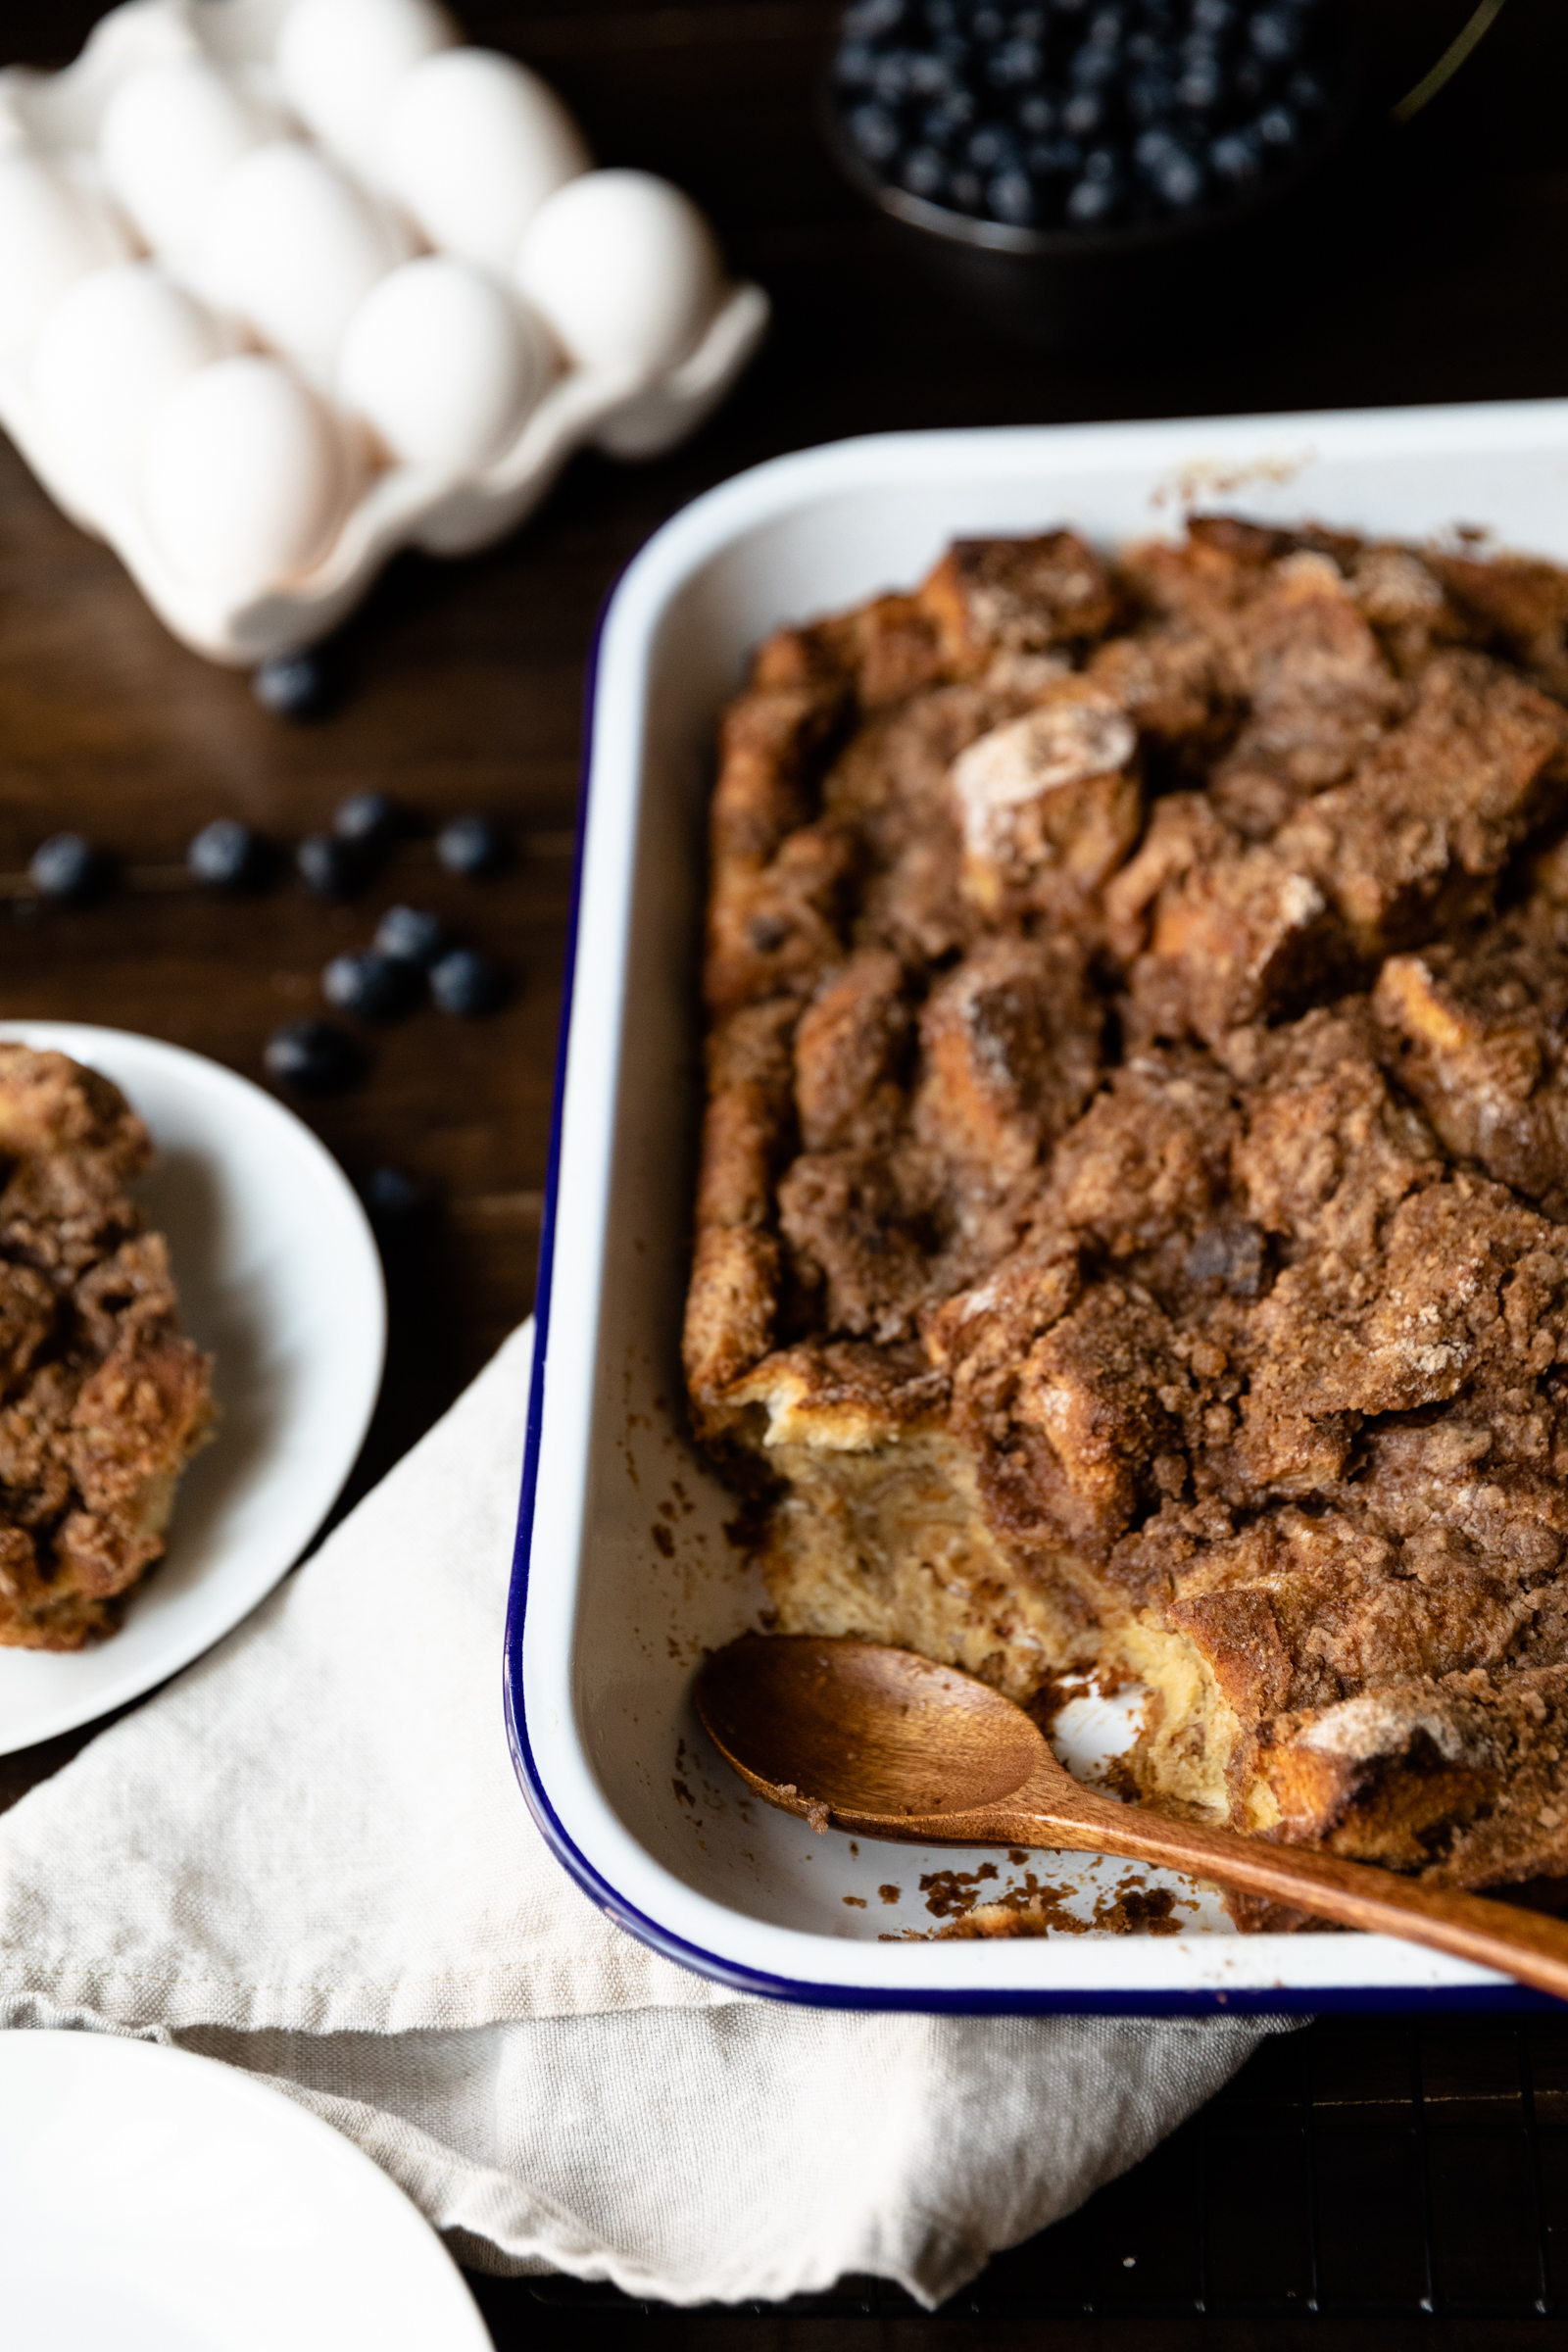 French toast in casserole dish